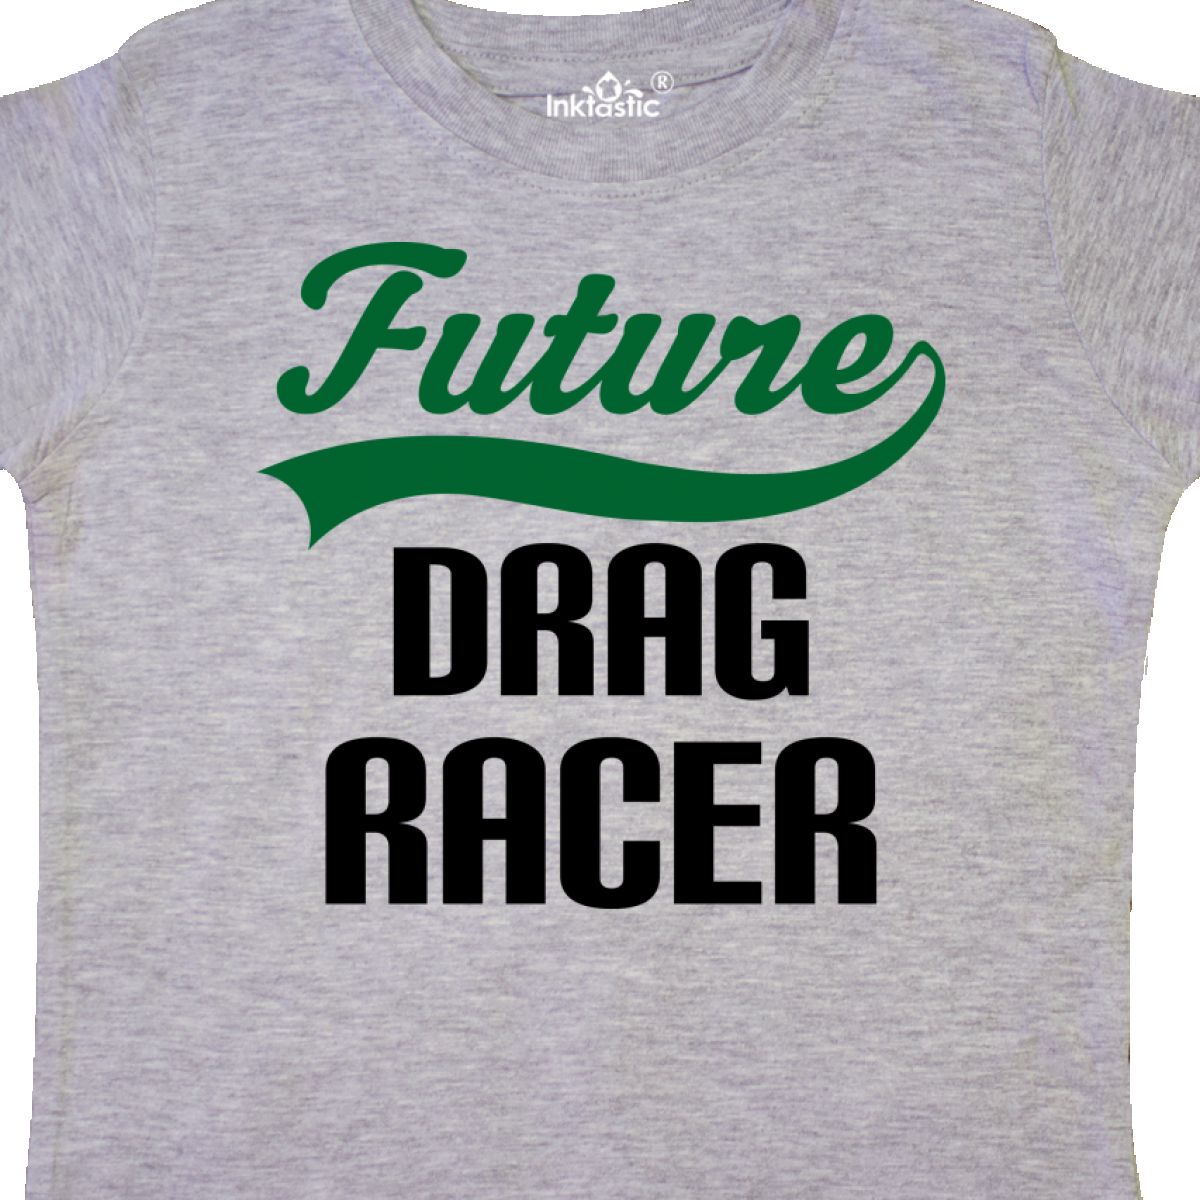 Drag Racing Team Shirts Bcd Tofu House